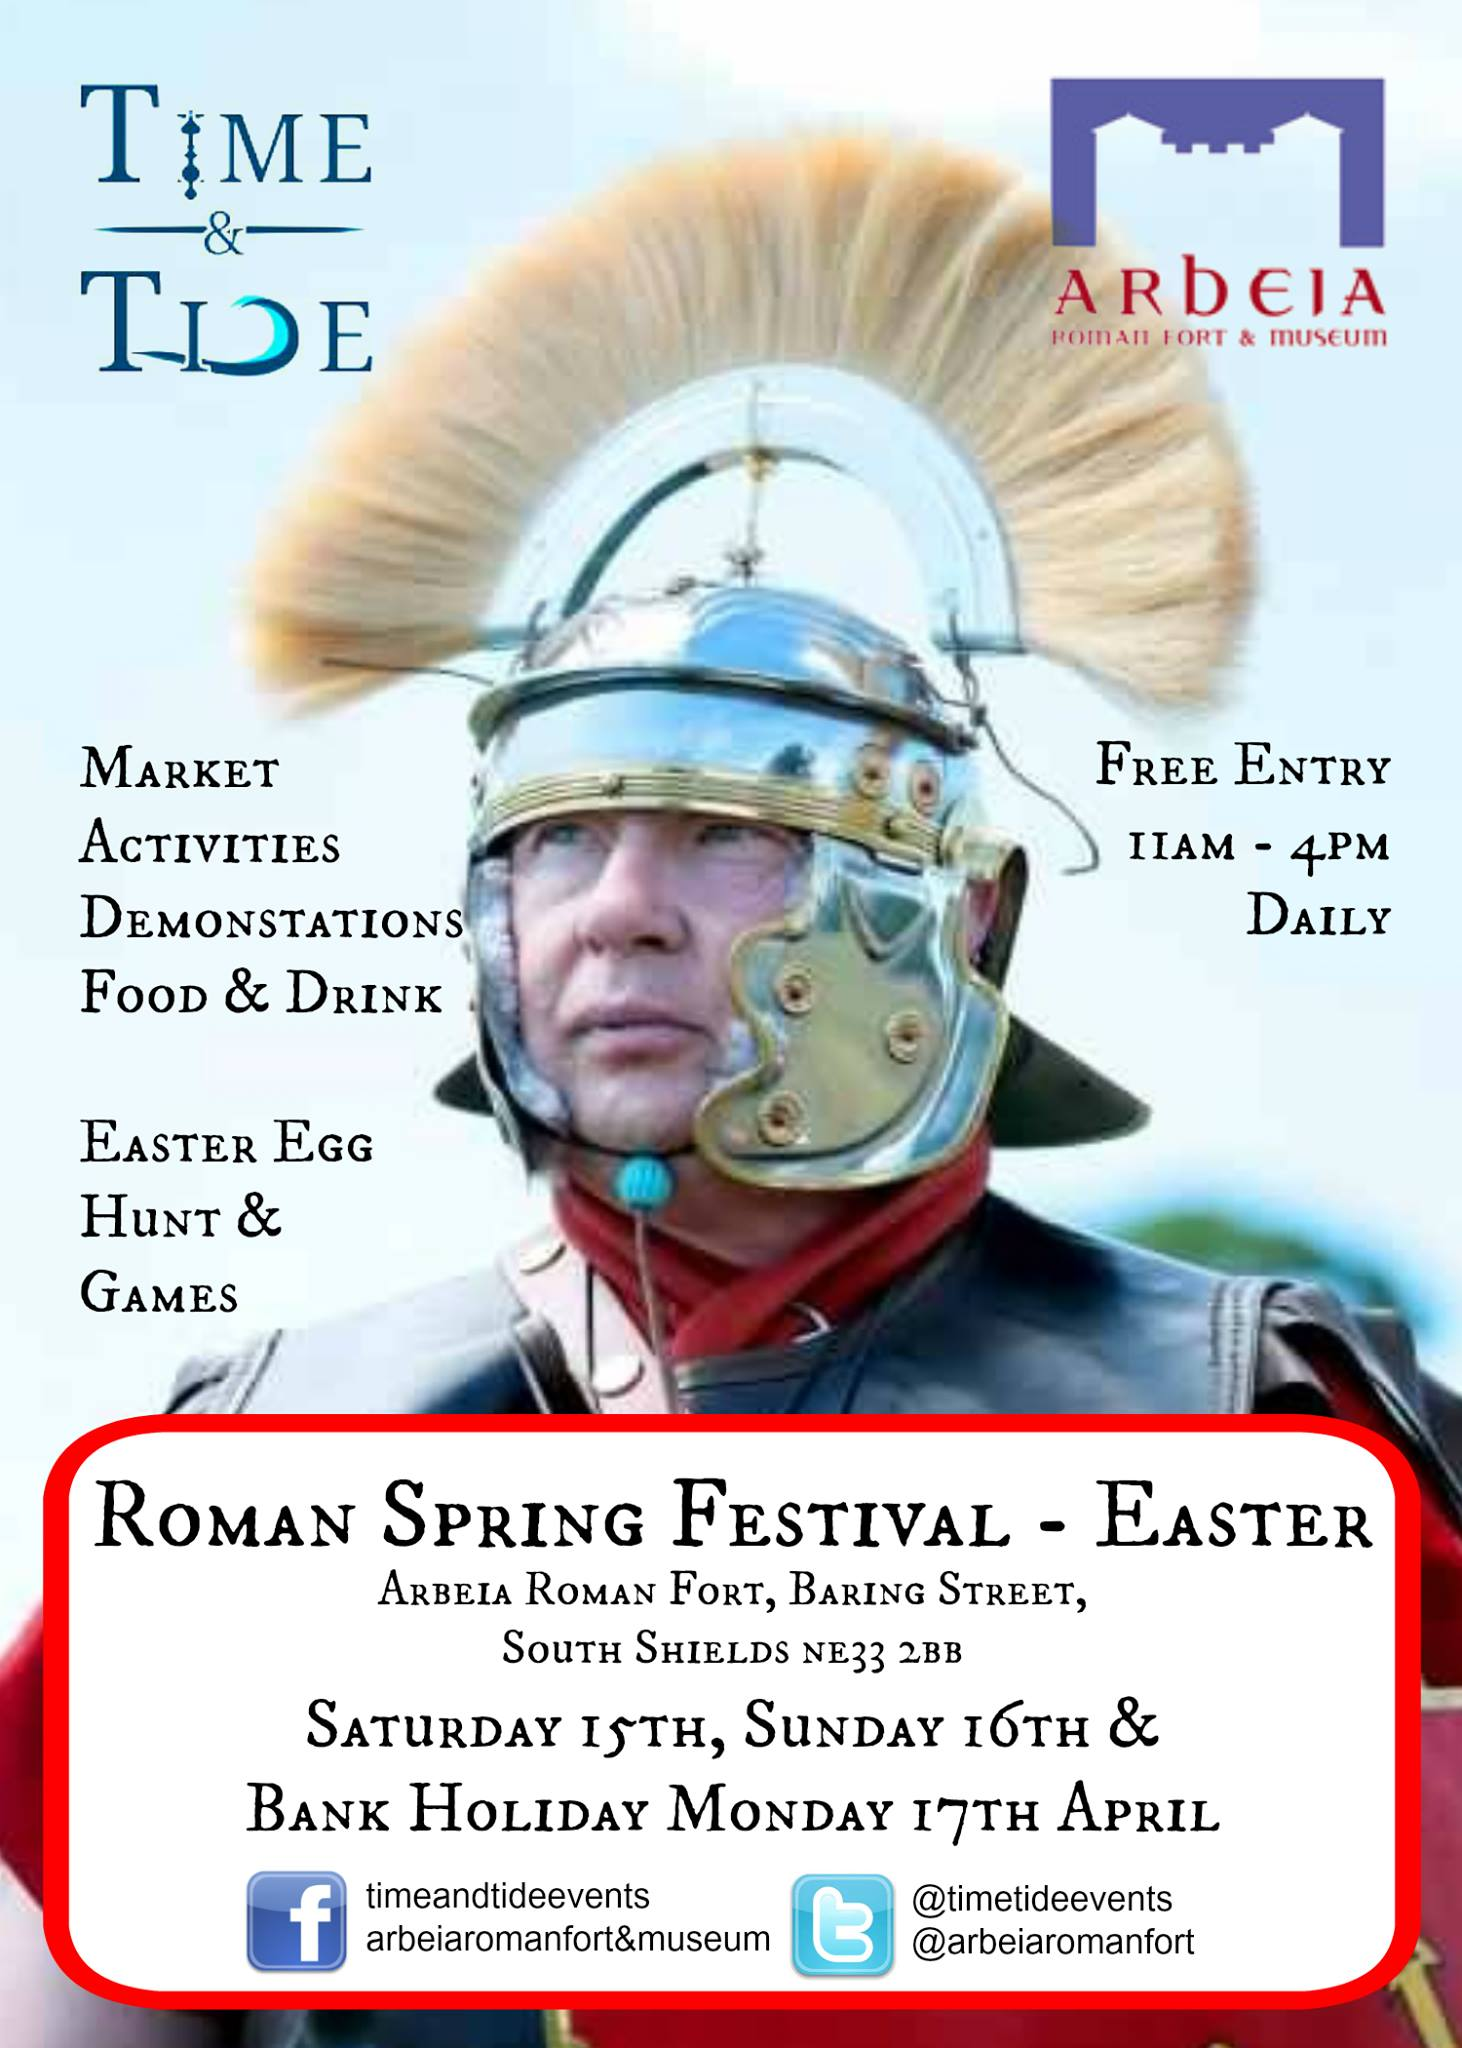 Roman Spring Festival At Arbeia Roman Fort Baring Street South Shields NE33 2BB